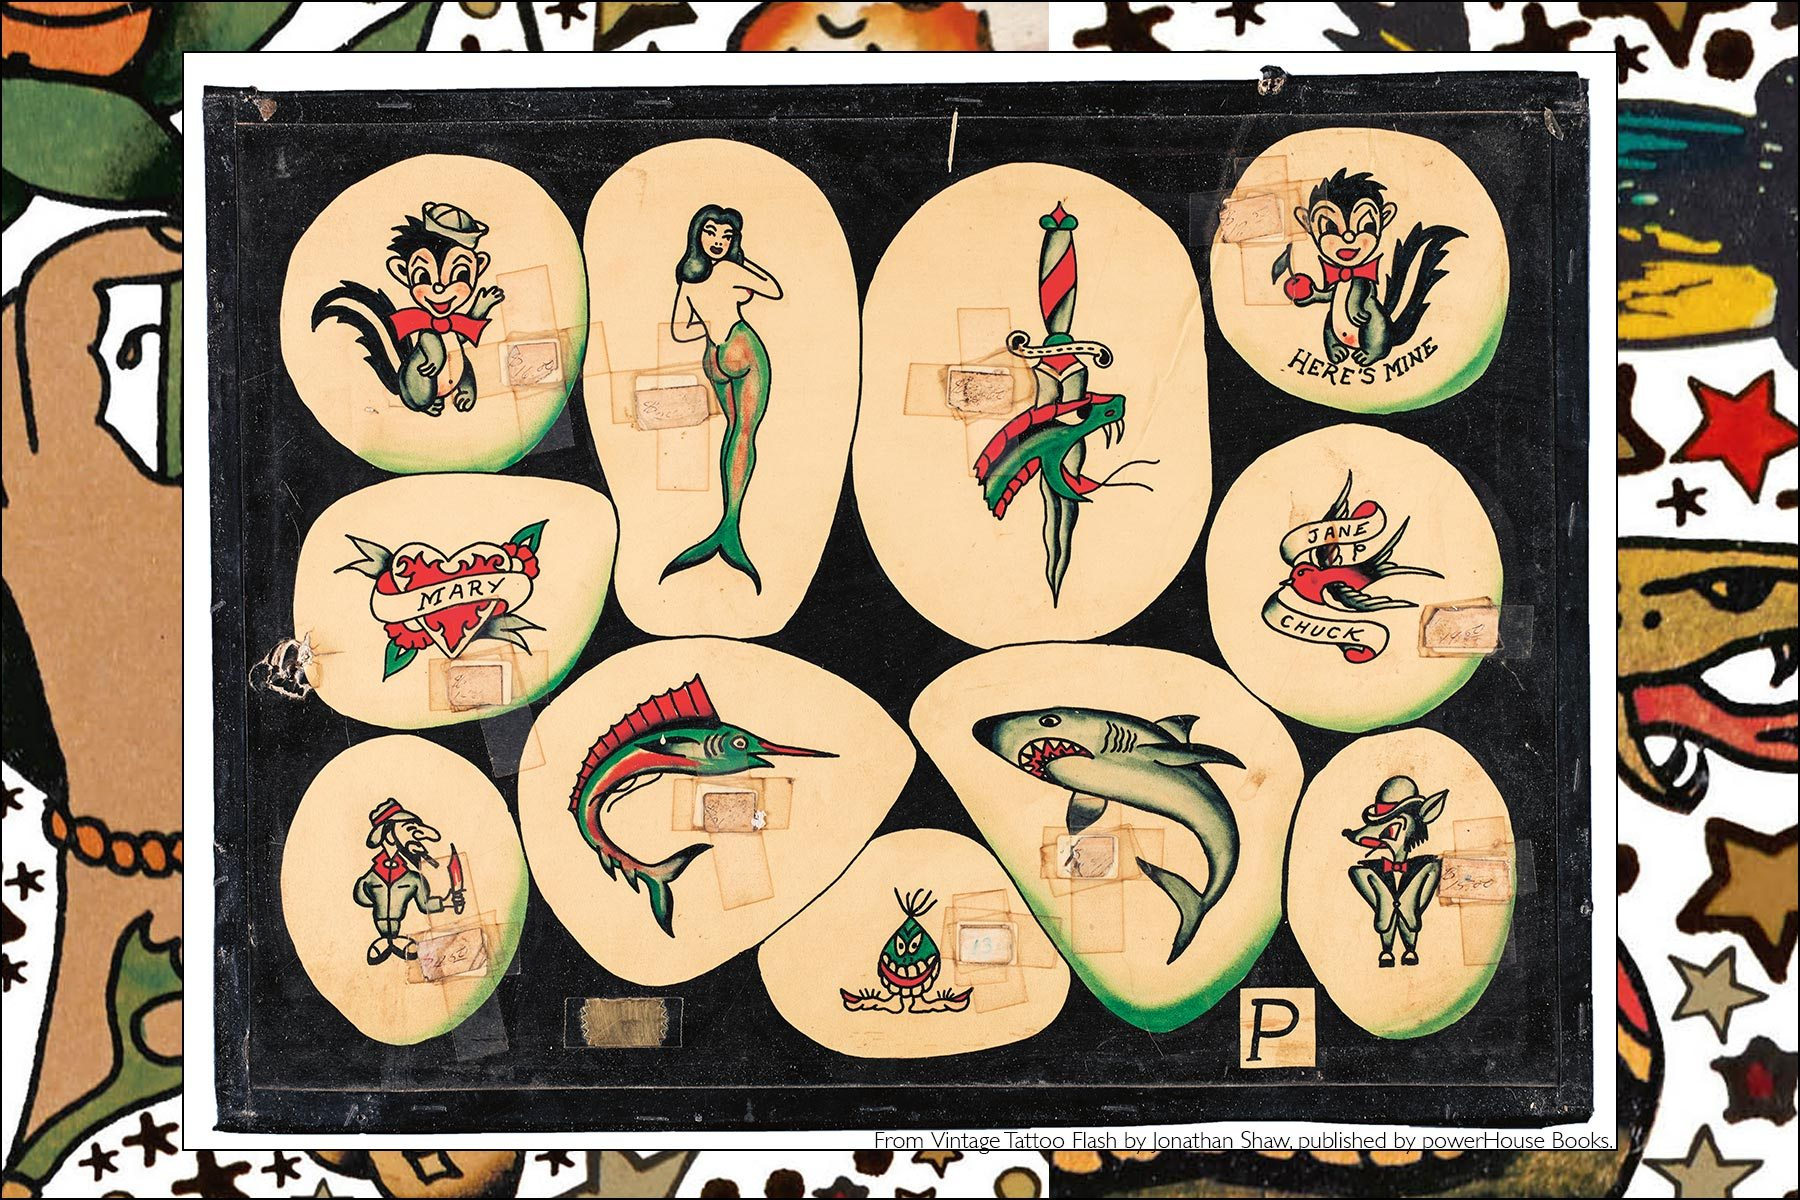 Old tattoo flash from the newly released publication by Powerhouse Books, Vintage Tattoo Flash by Jonathan Shaw. Ponyboy magazine NY.